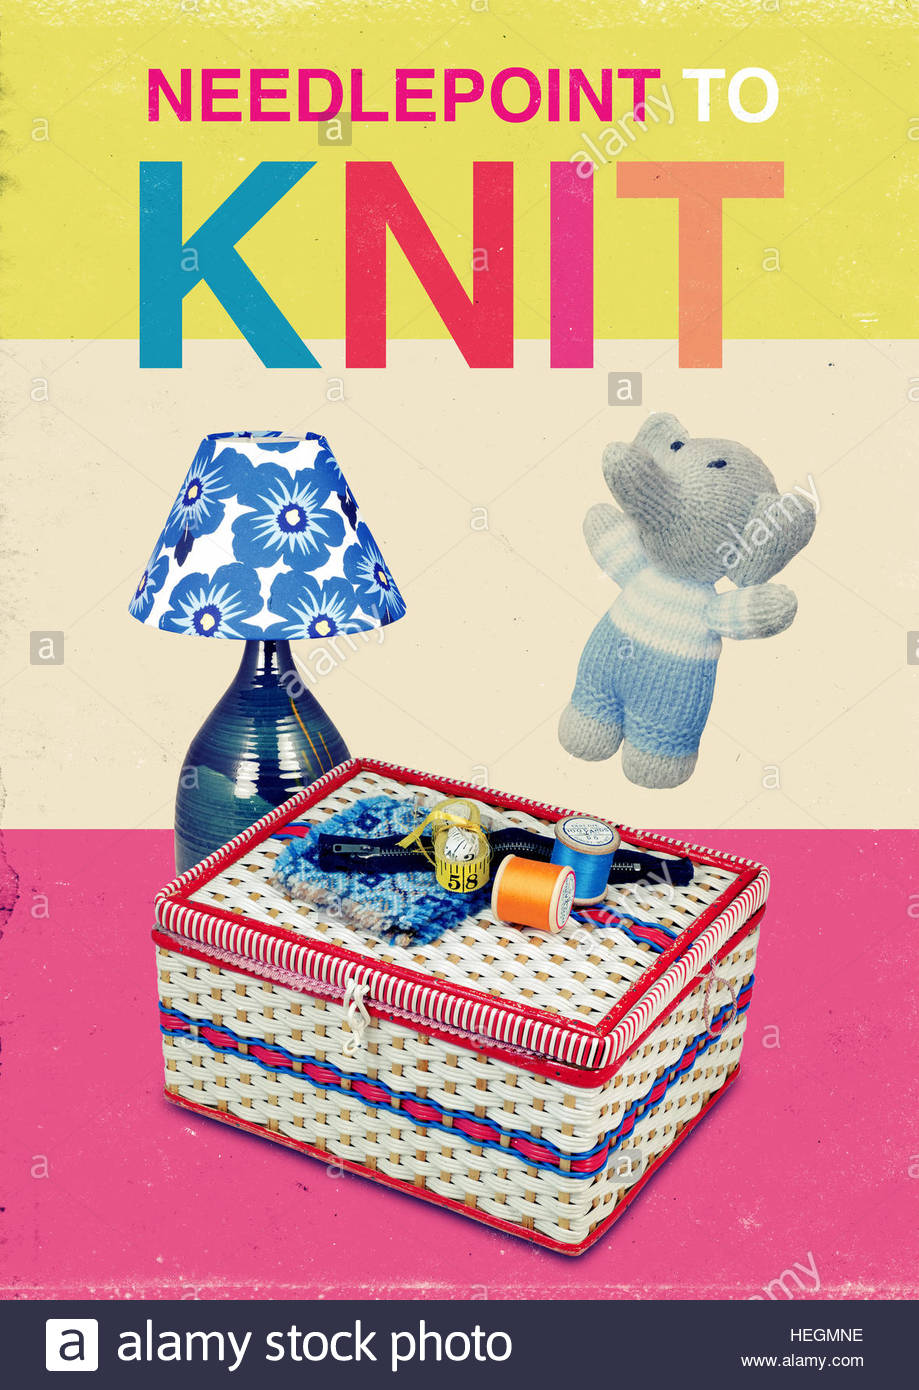 Needlepoint to knit mid century retro kitsch vintage lifestyle - Stock Image